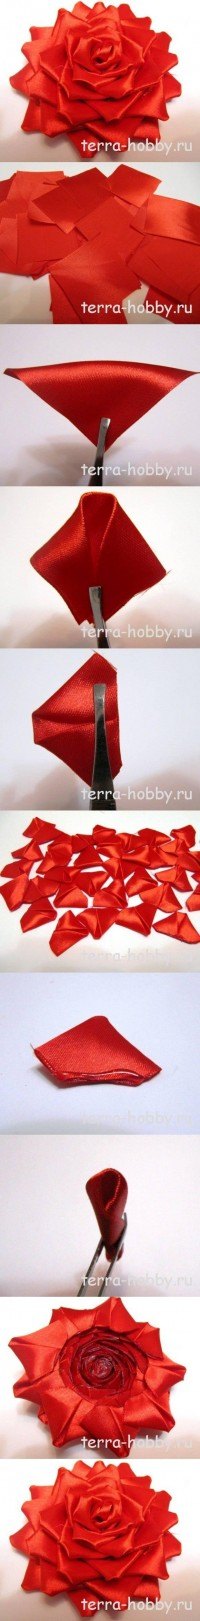 DIY Elegant Ribbon Rose for Wedding DIY Projects | UsefulDIY.com